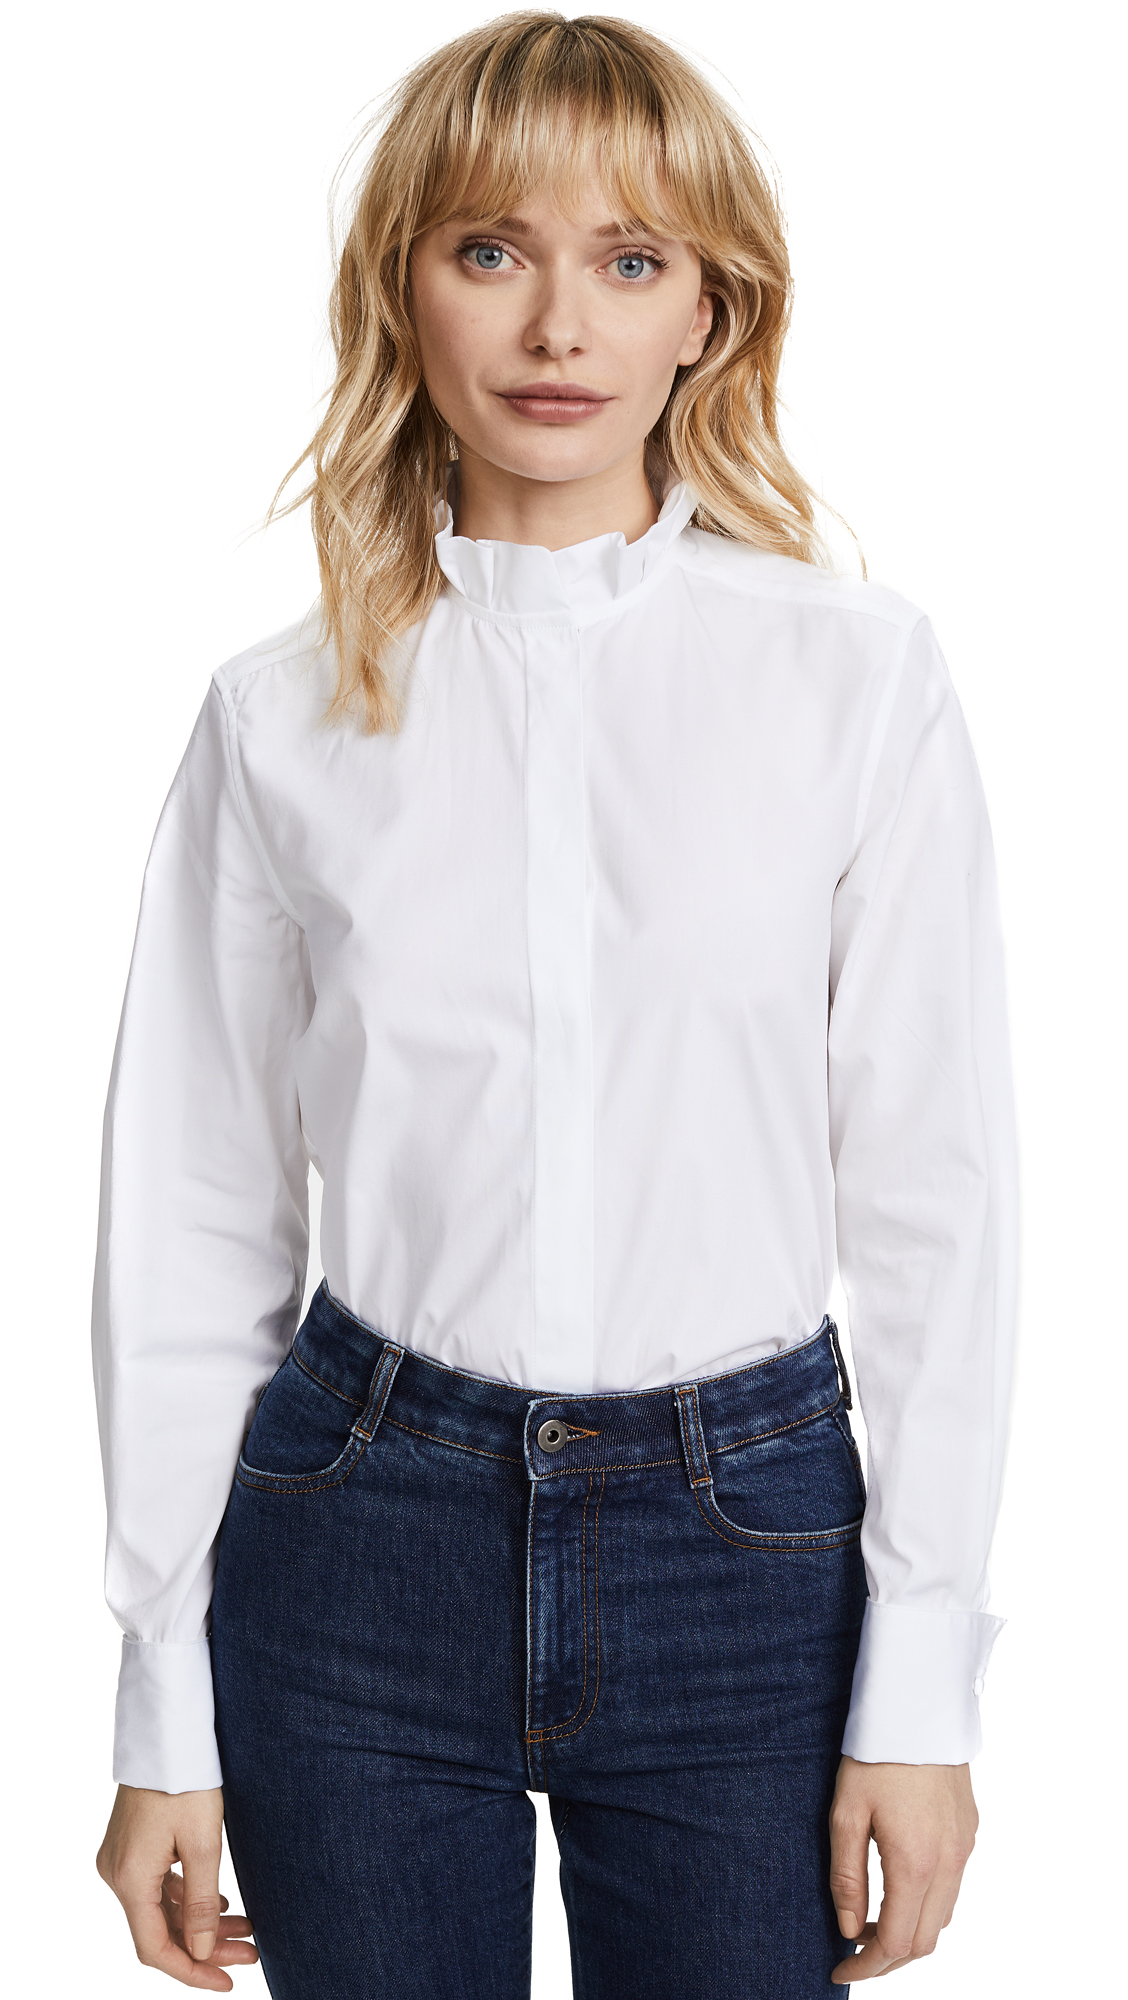 Protagonist Pleated Collar Shirt